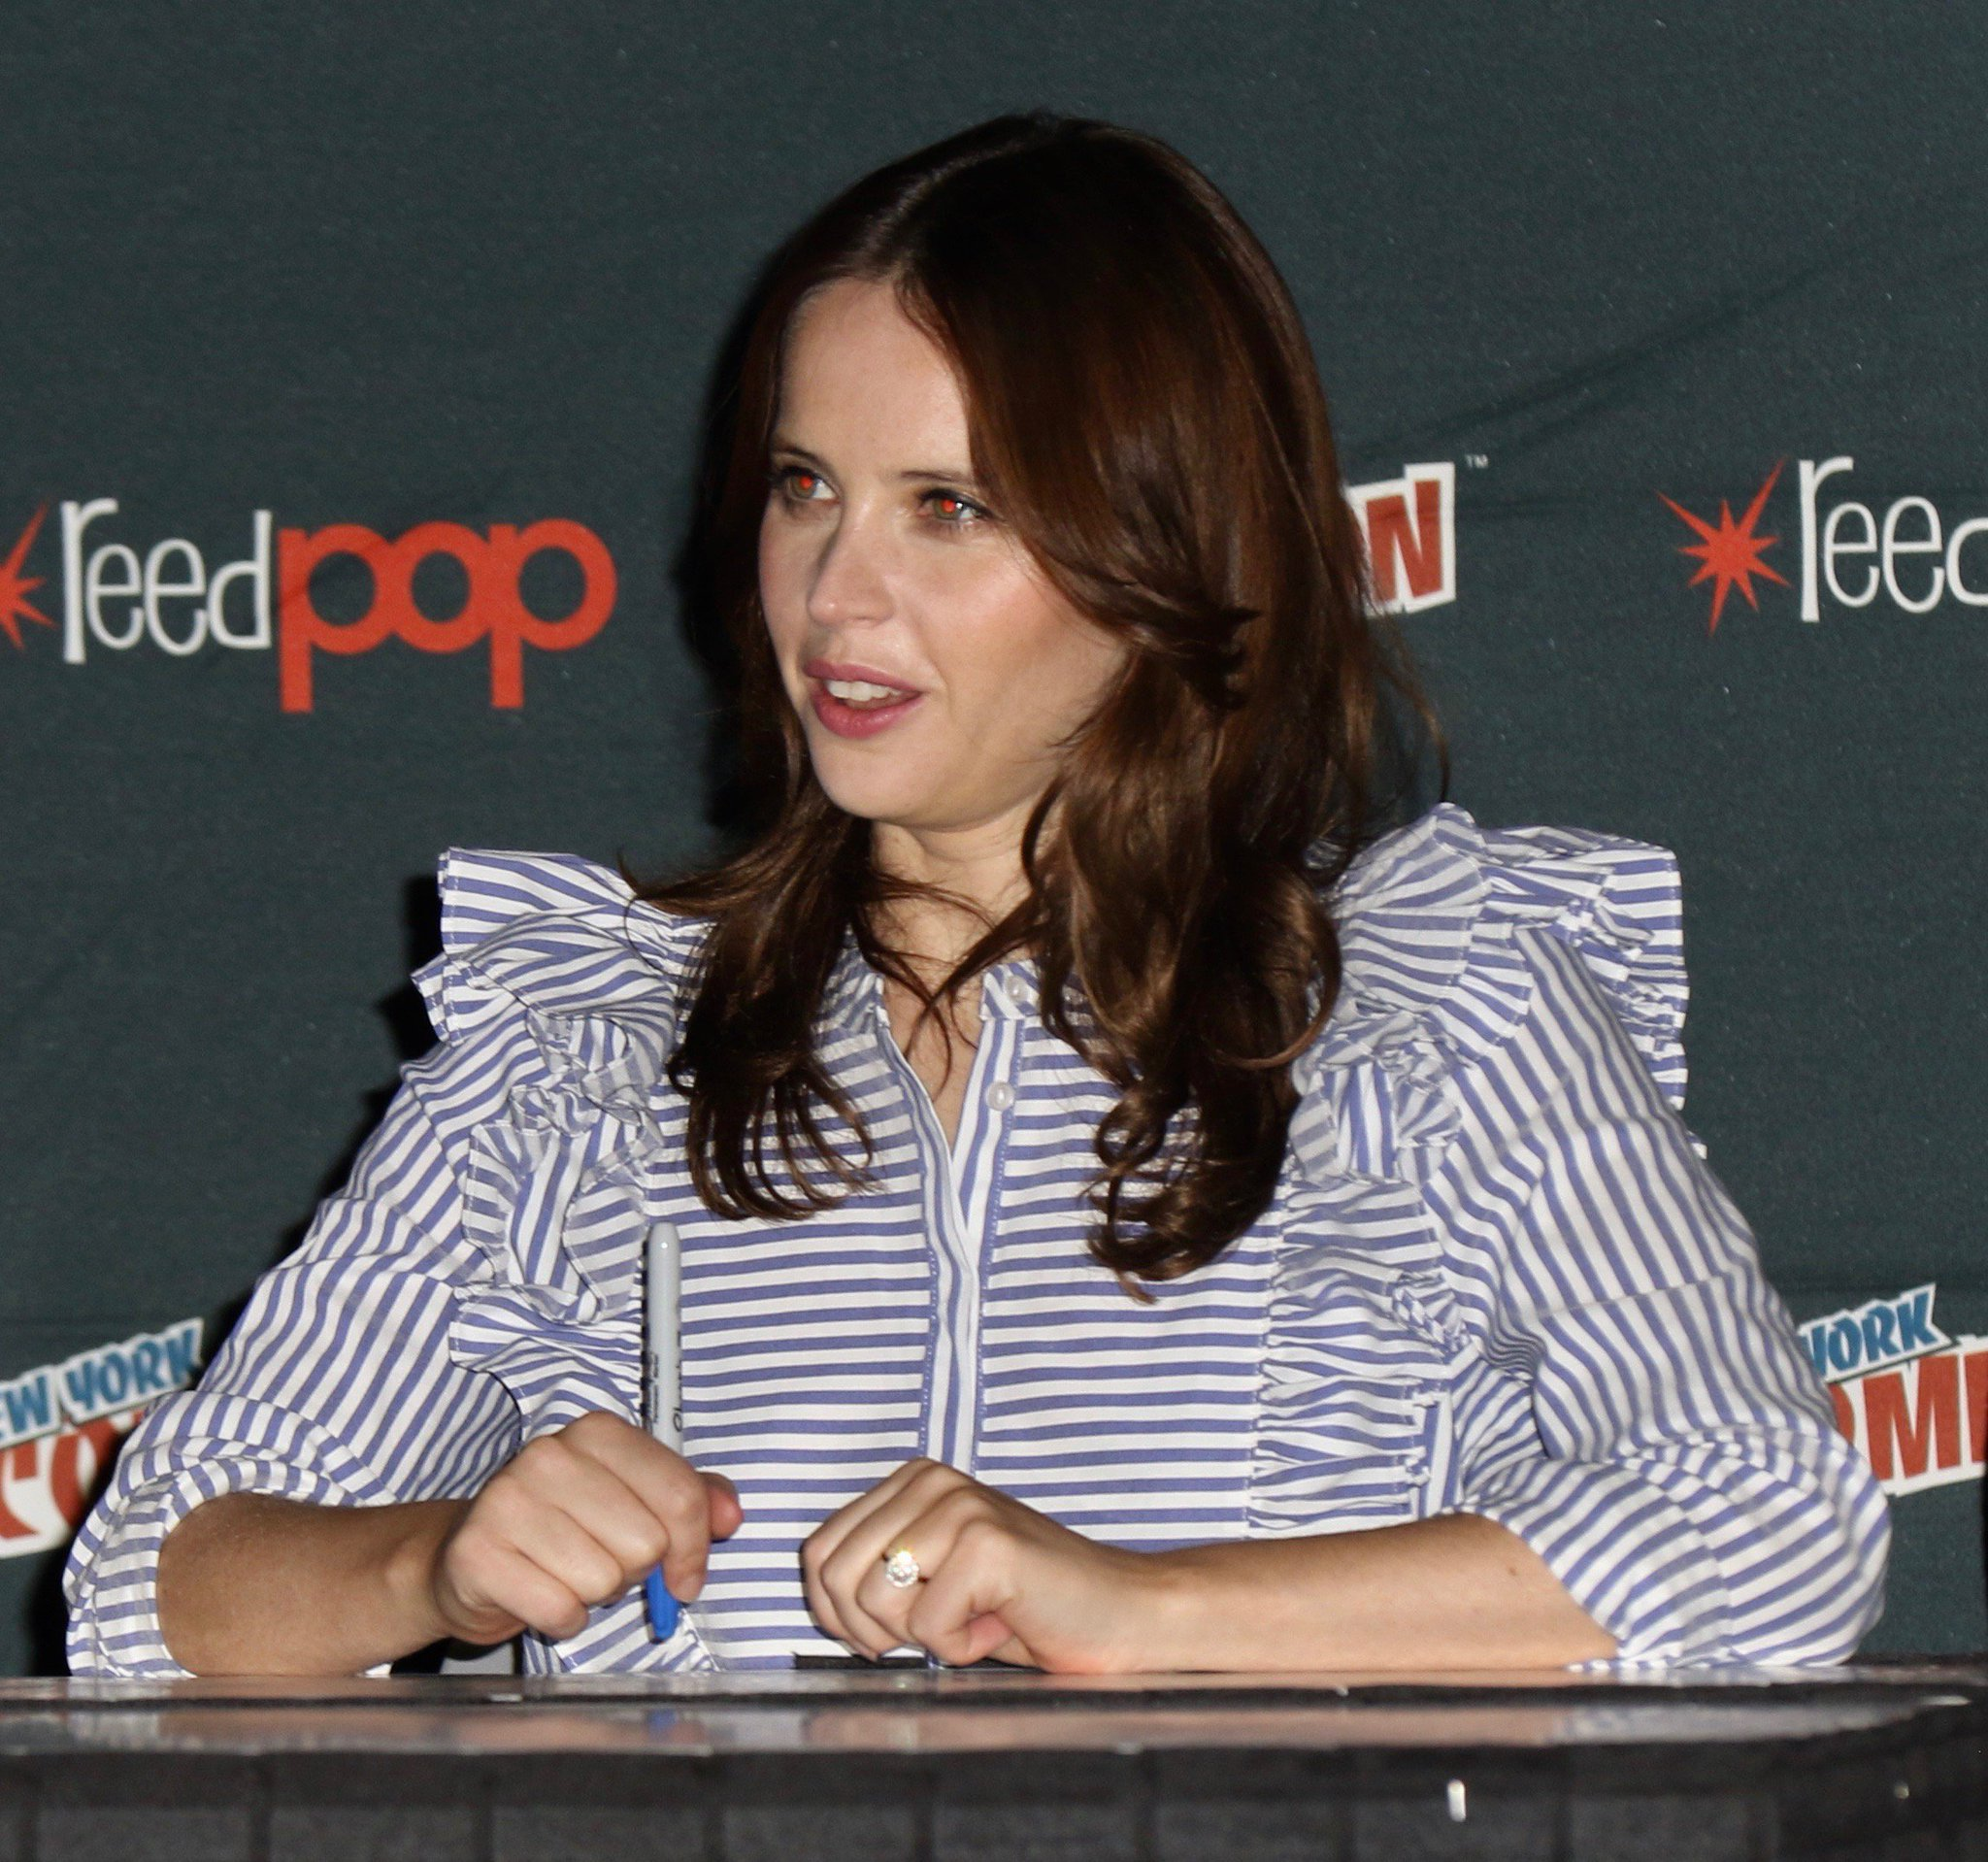 October 6 - New York Comic Con. https://t.co/SWPadCHg5B #FelicityJones #NYCC2017 https://t.co/ScLWoEKr8n